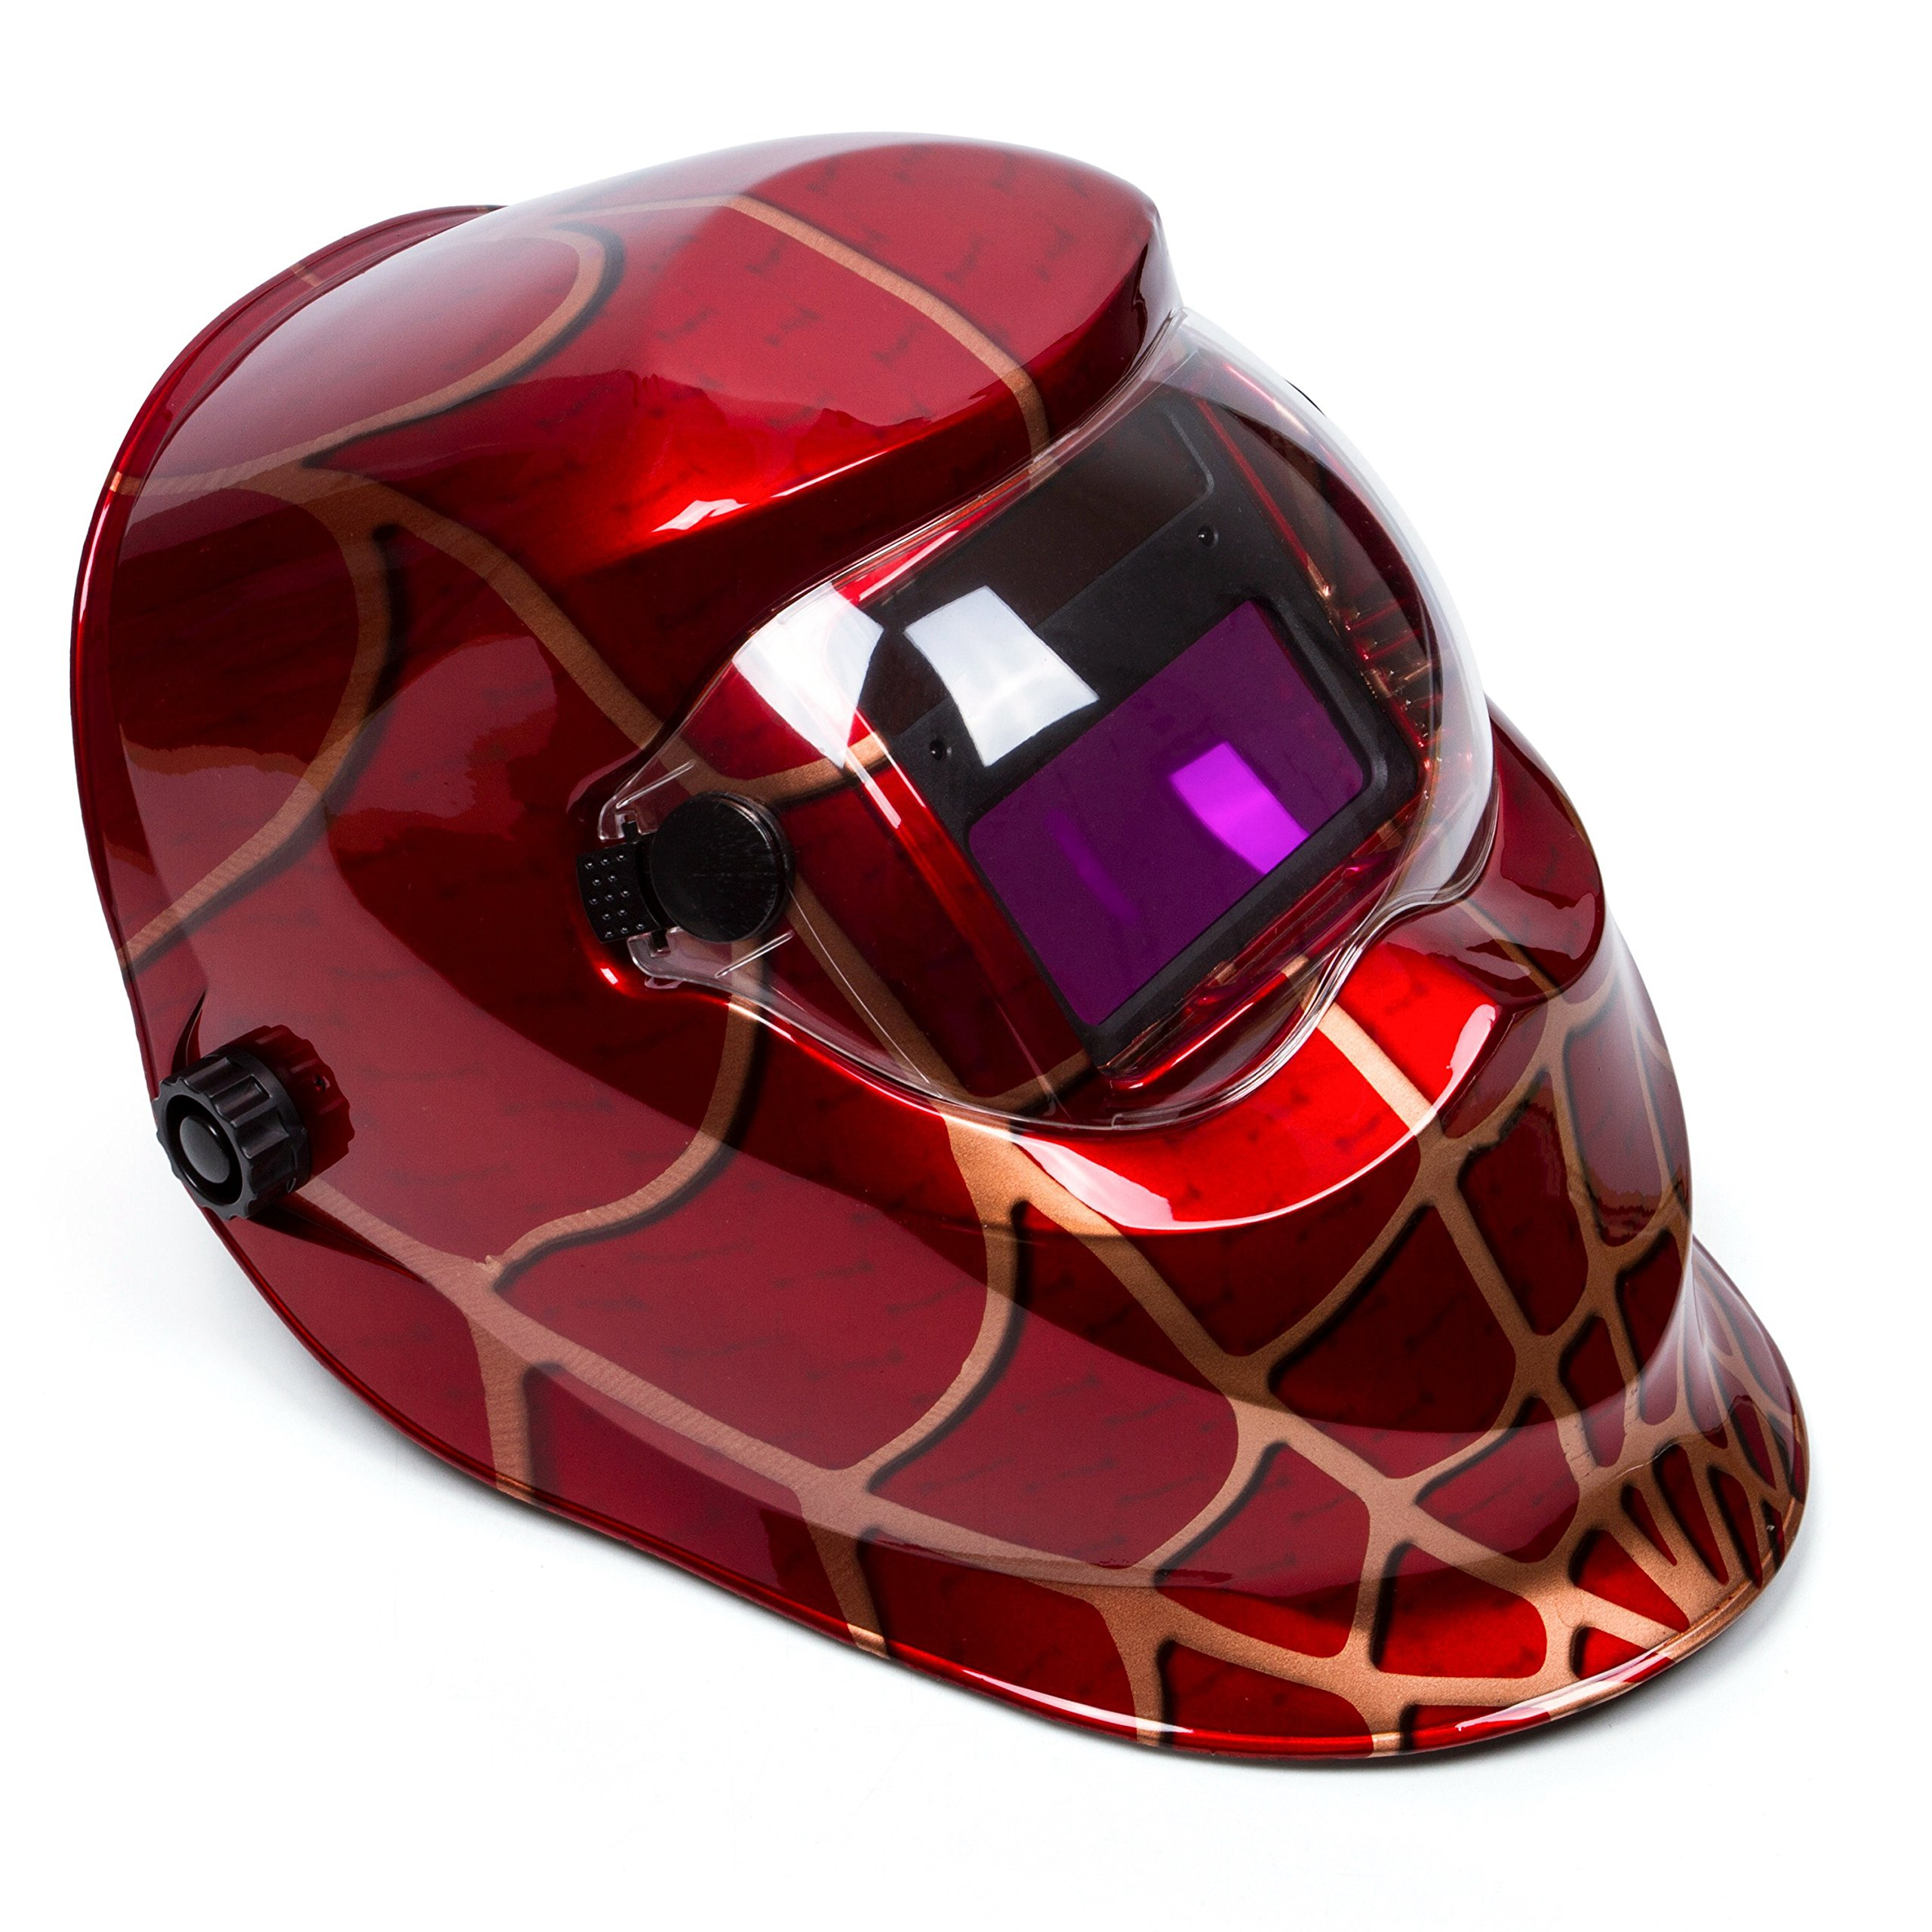 Holulo Welding Helmet Solar Power Auto Darkening Wide Viewing Field Professional Hood for MIG TIG ARC Cap Mask (Red spider)